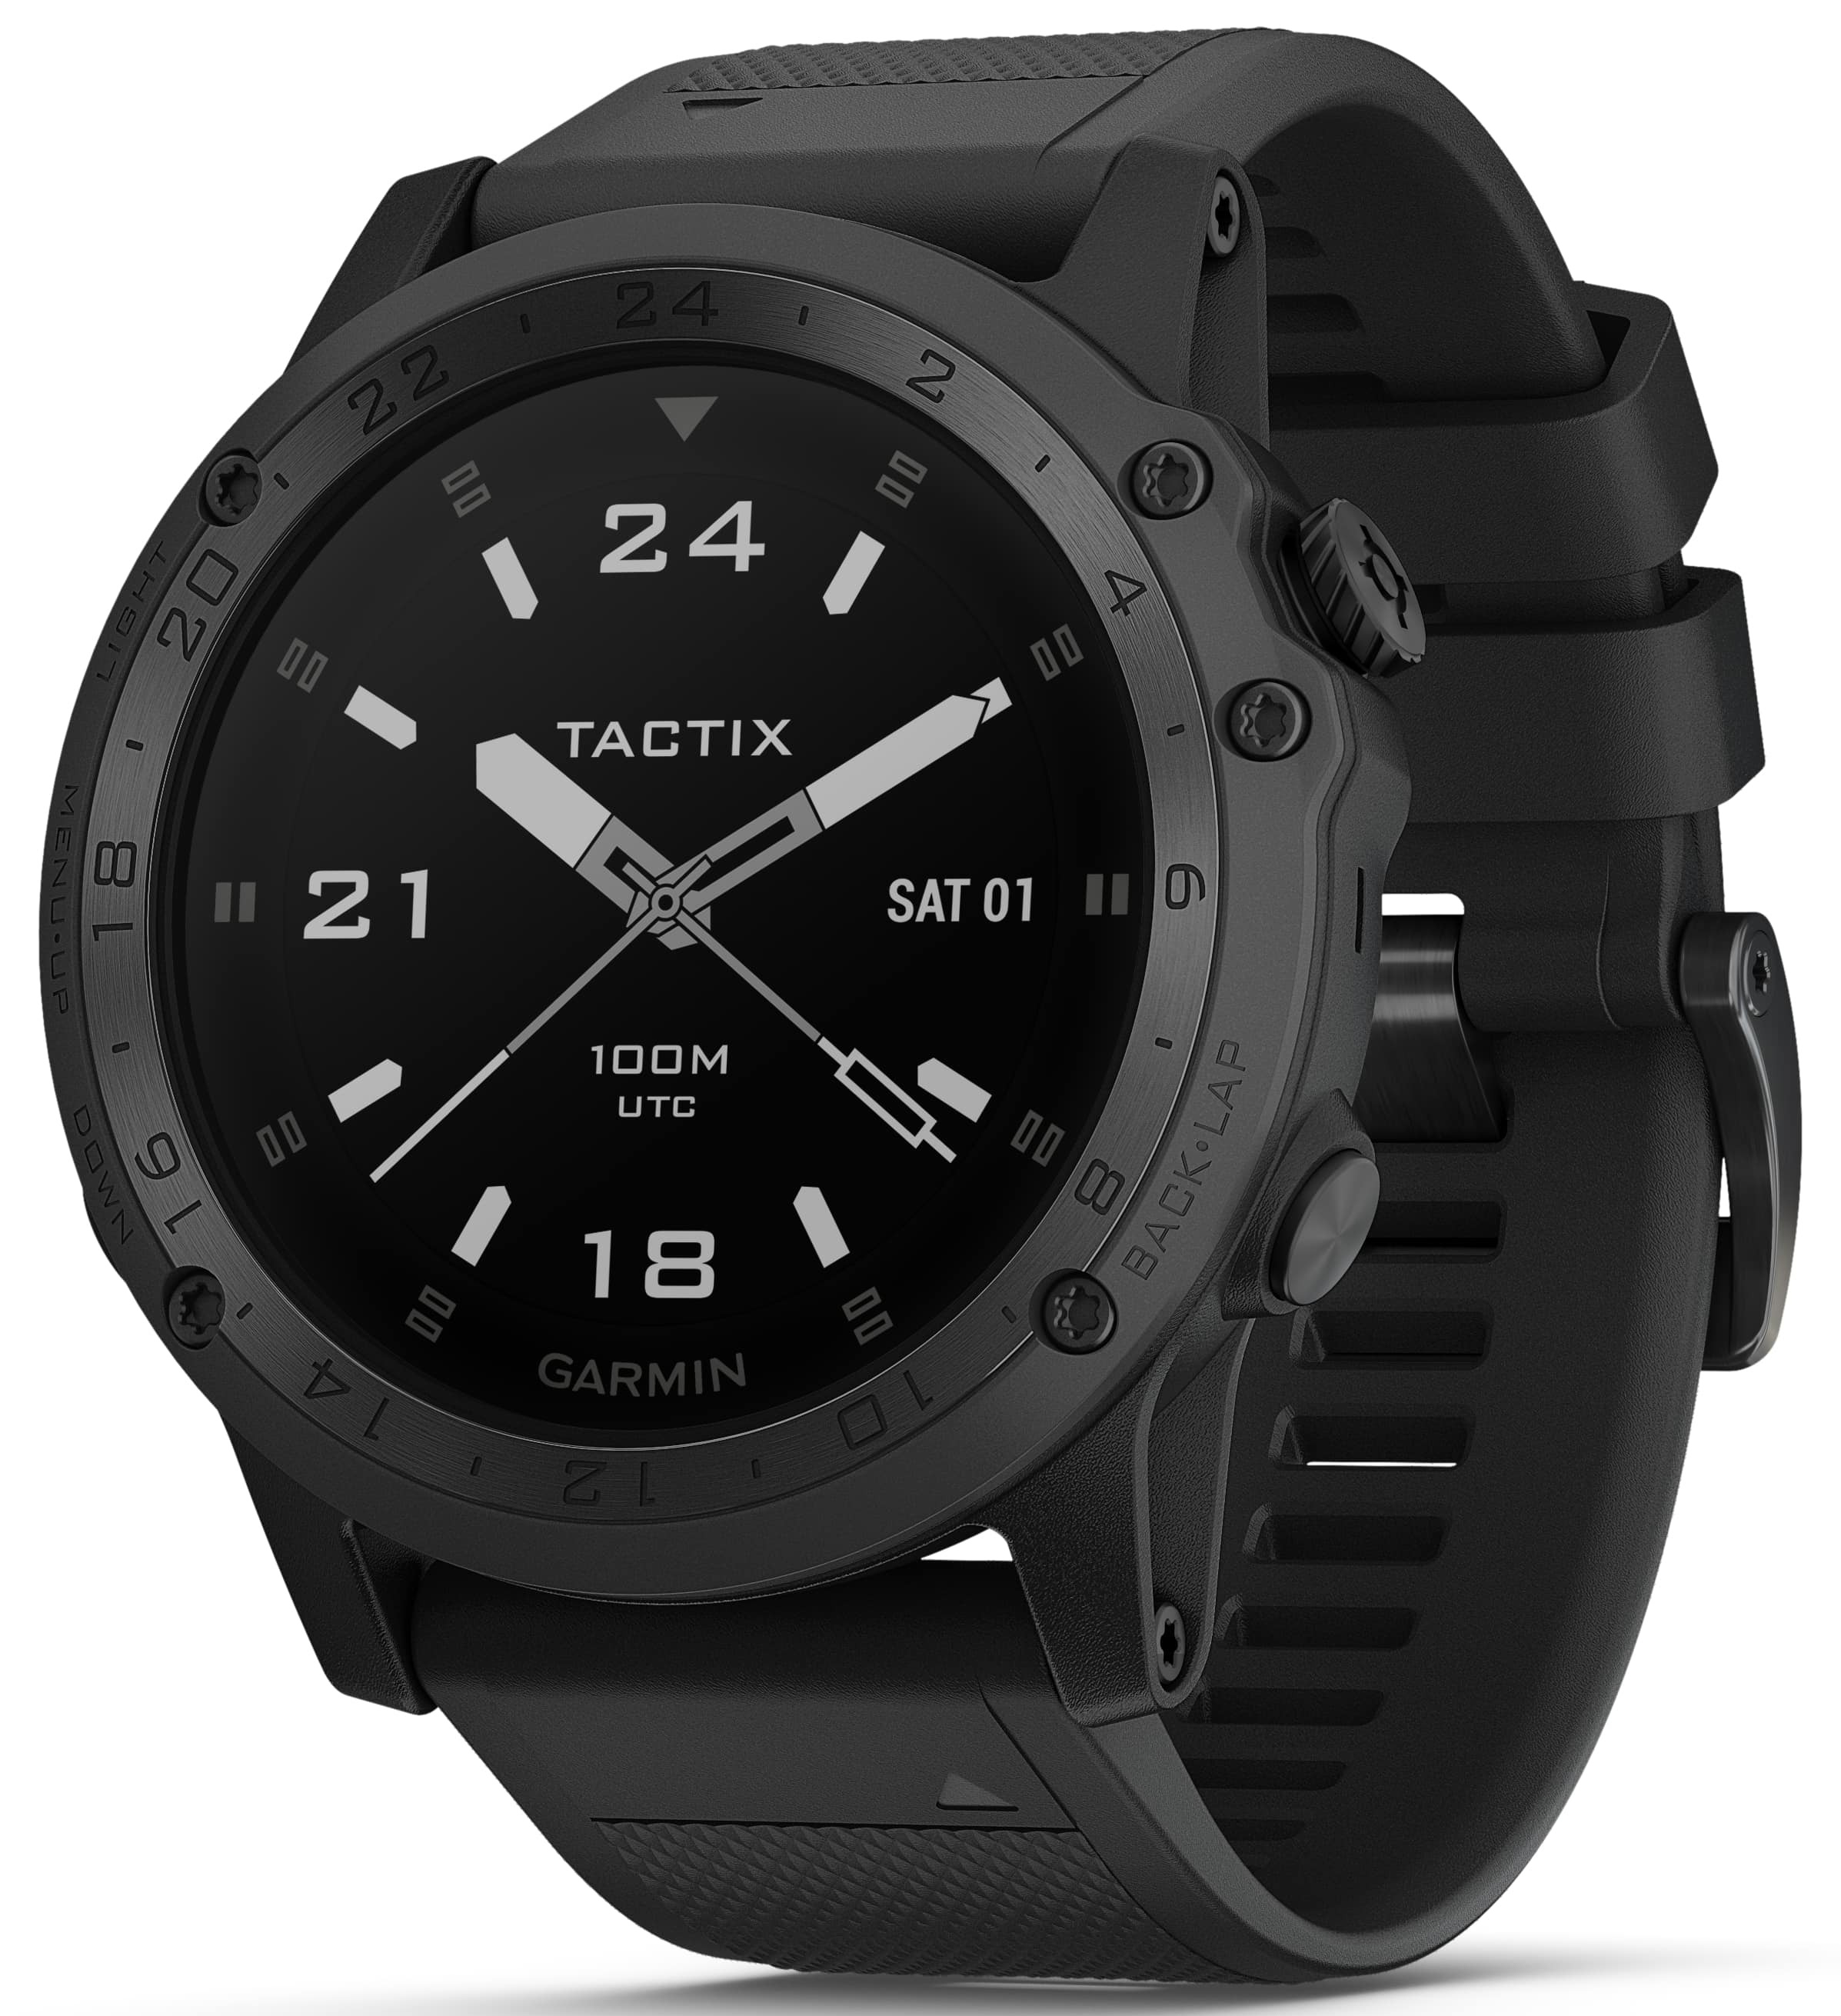 Garmin Tactix 010-02085-00 Sort/Gummi Ø51 mm - Garmin